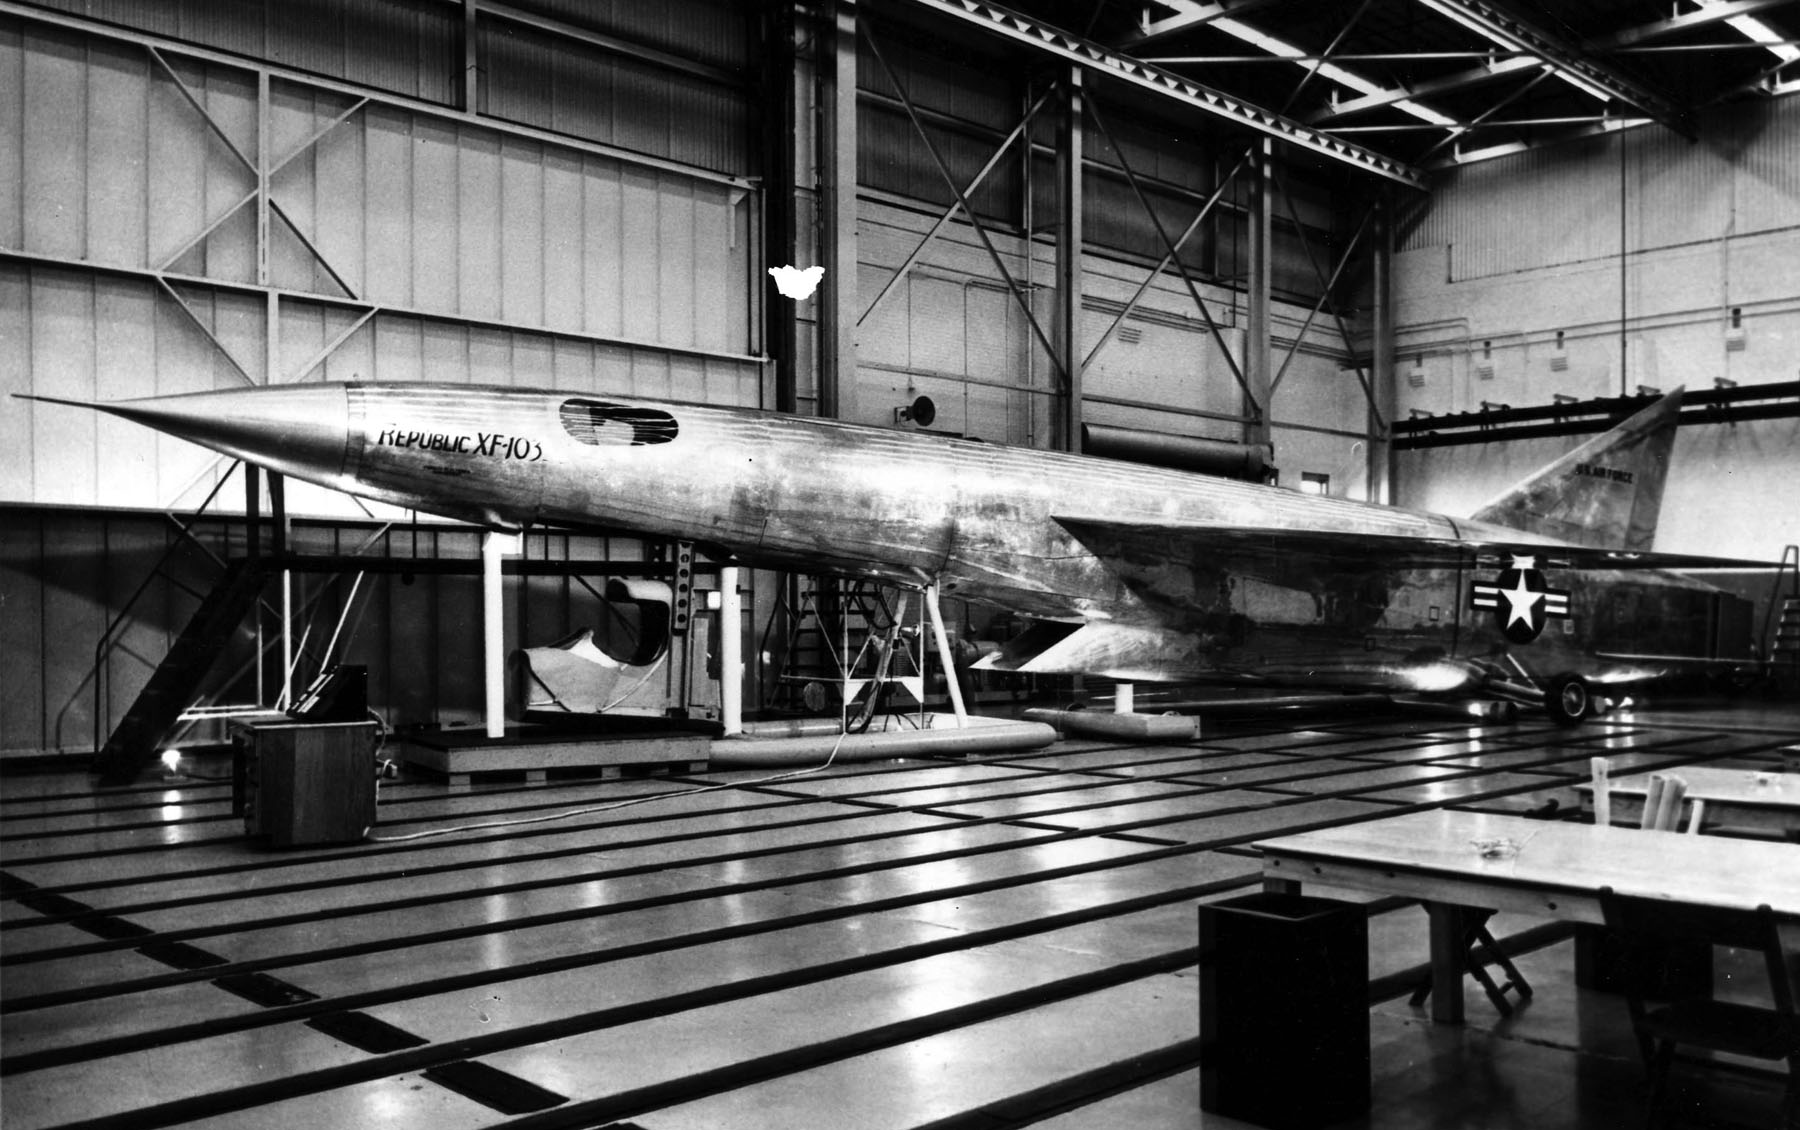 A mock-up of the F-103 was built at the Republic factory. In this image, the pilot's capsule is shown in its lowered position. ( Image by  National Museum of US Air Force via Wikipedia)